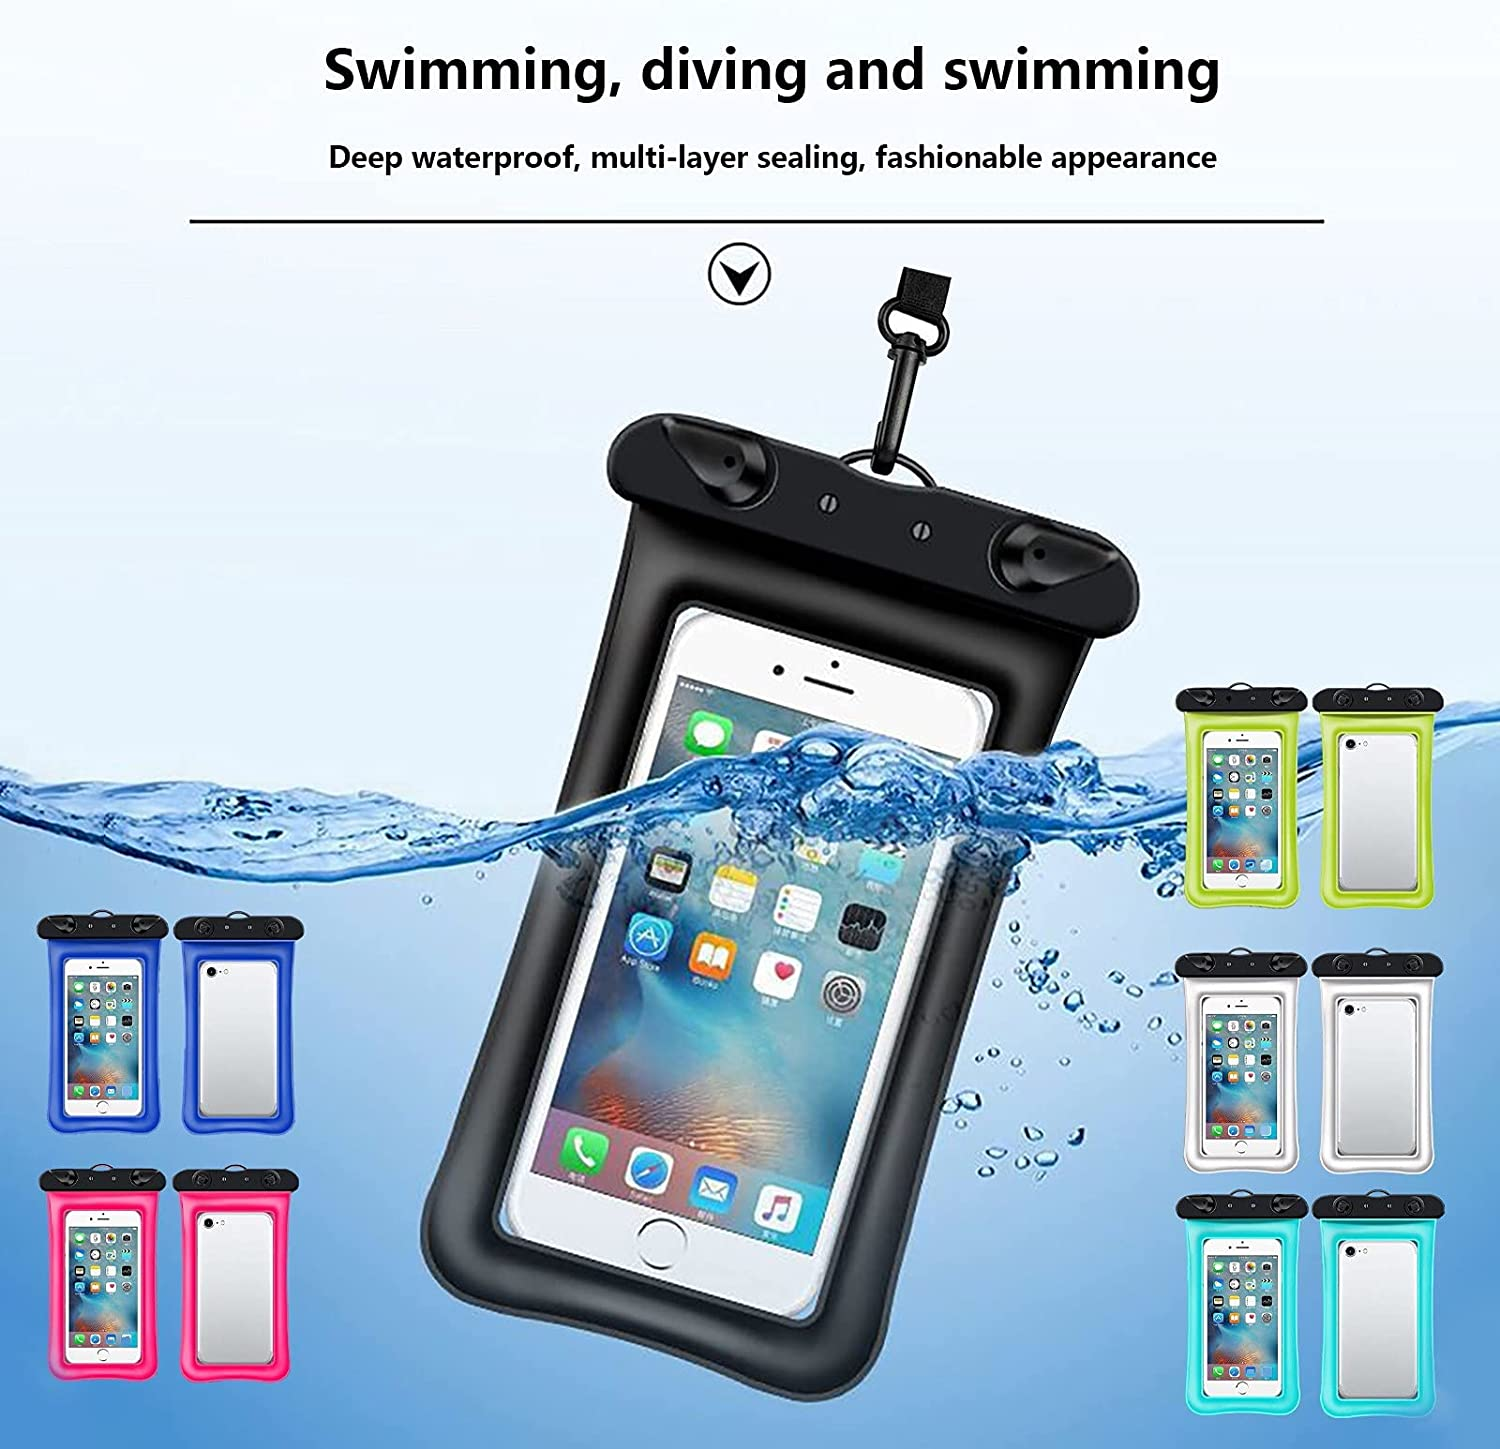 EKOUSN Waterproof Floating Pouch Dry Bag Case Cover for iPhone Cell Phone Touchscreen